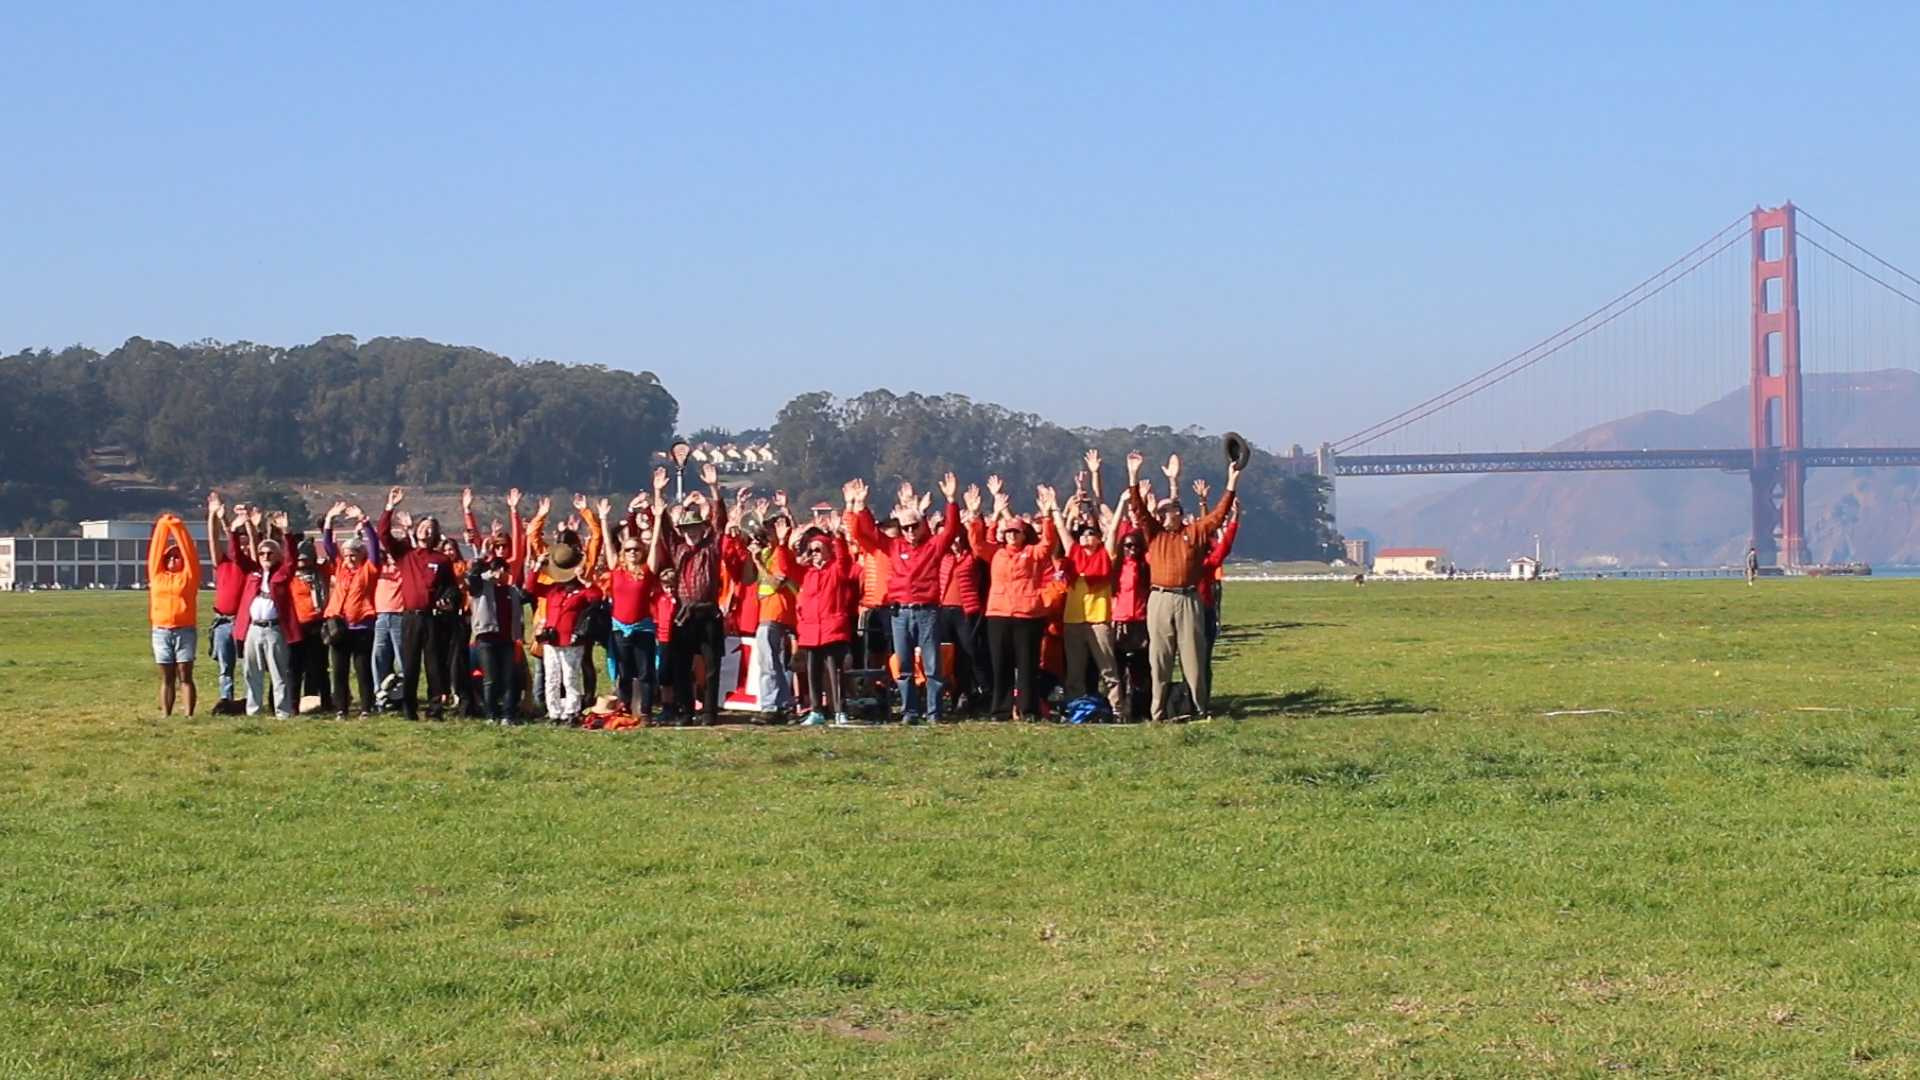 SF State's Recreation, Parks and Tourism department celebrated the National Park Service's 100th birthday at Crissy Field, Golden Gate National Recreation Nov. 14, 2015. (Screenshot by Lulu Orozco)